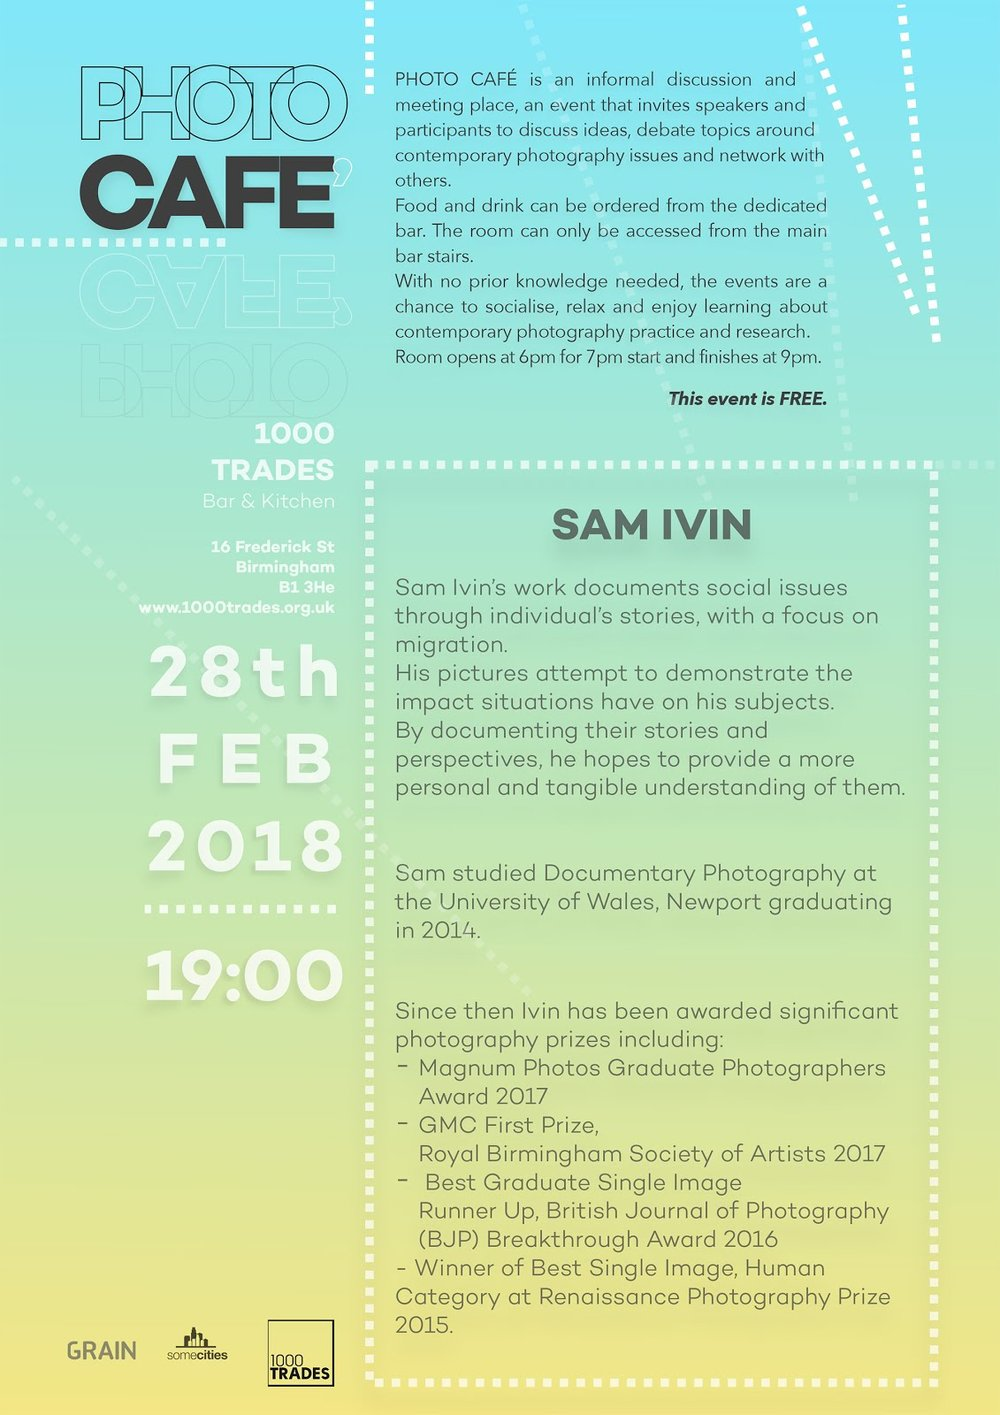 Photo cafe flyer February 2018.jpg